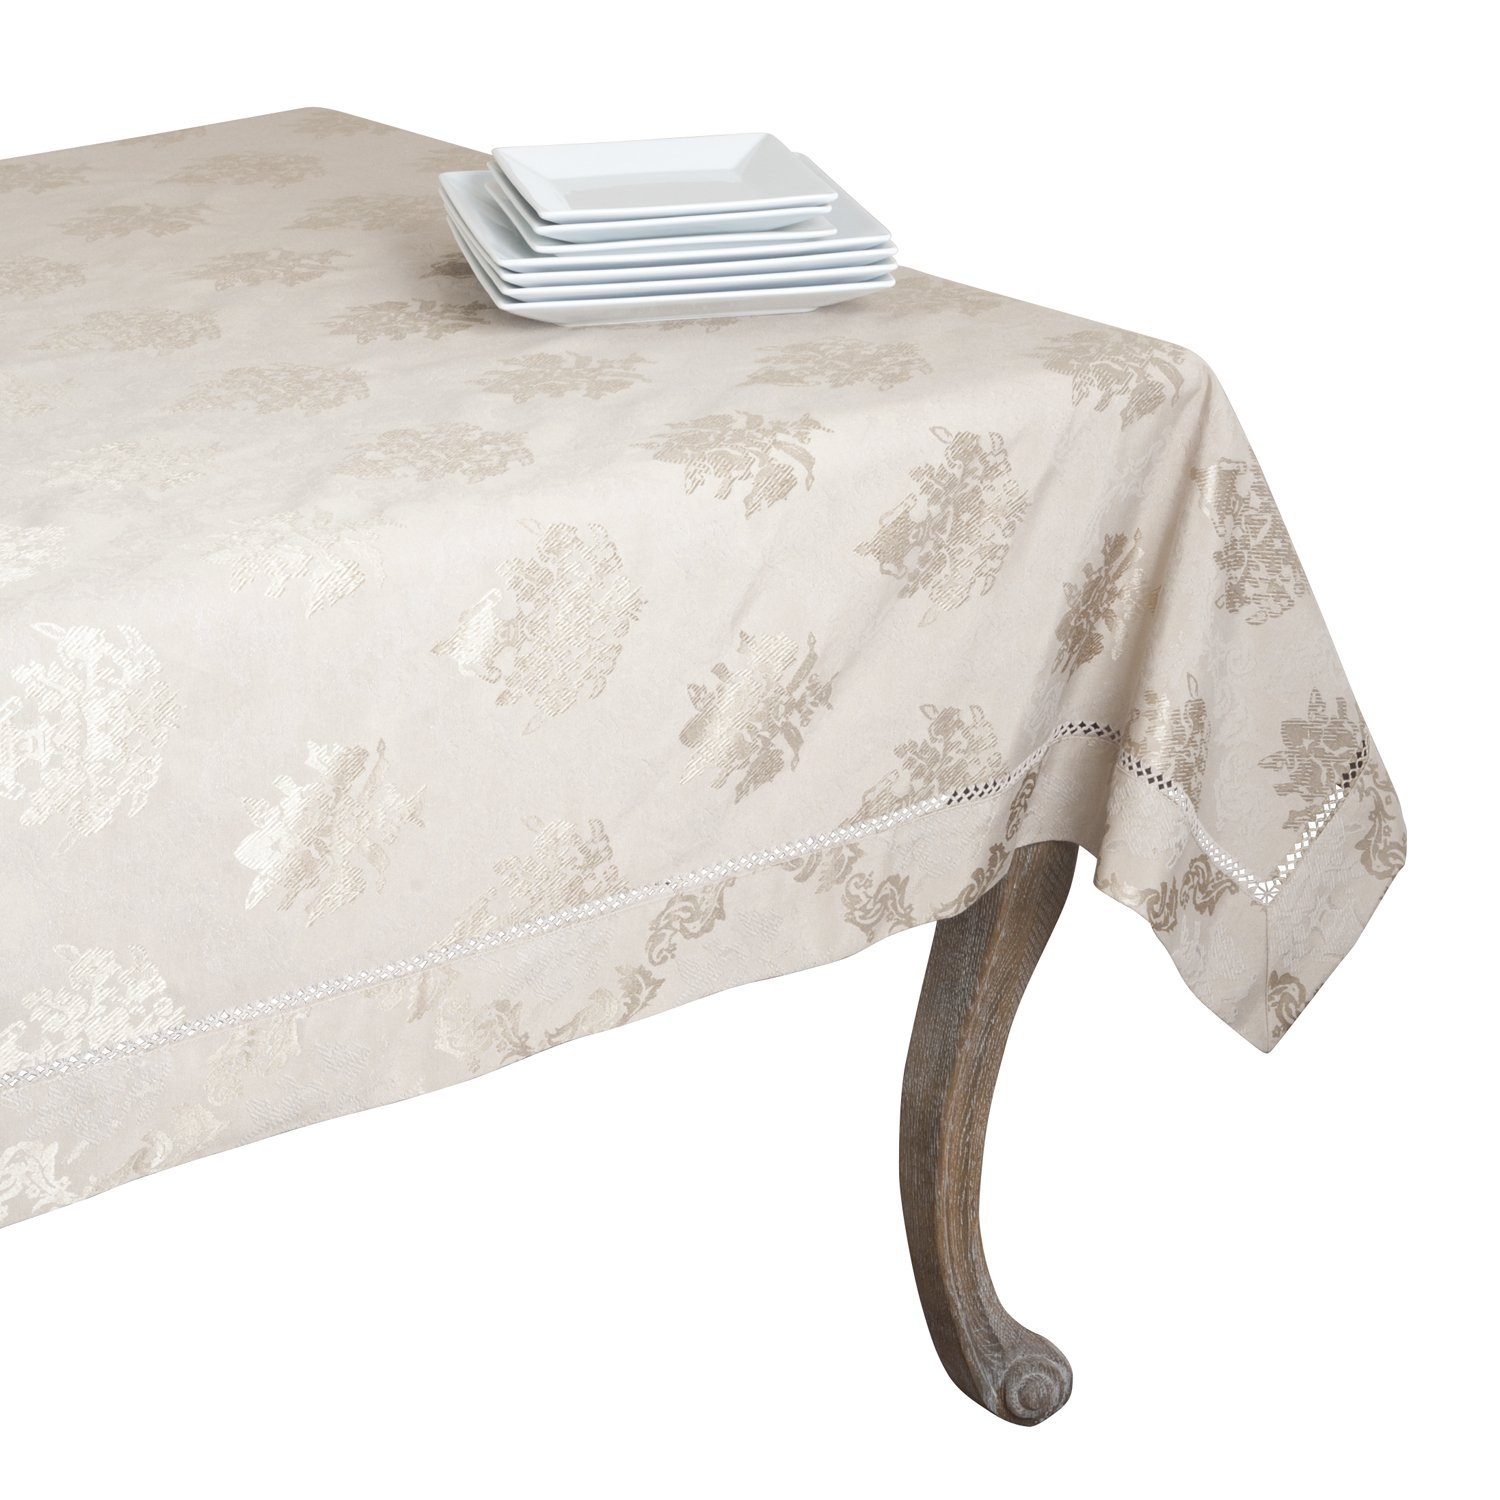 SARO LIFESTYLE DM871 Paloma Oblong Tablecloth, 70-Inch by 120-Inch, Taupe